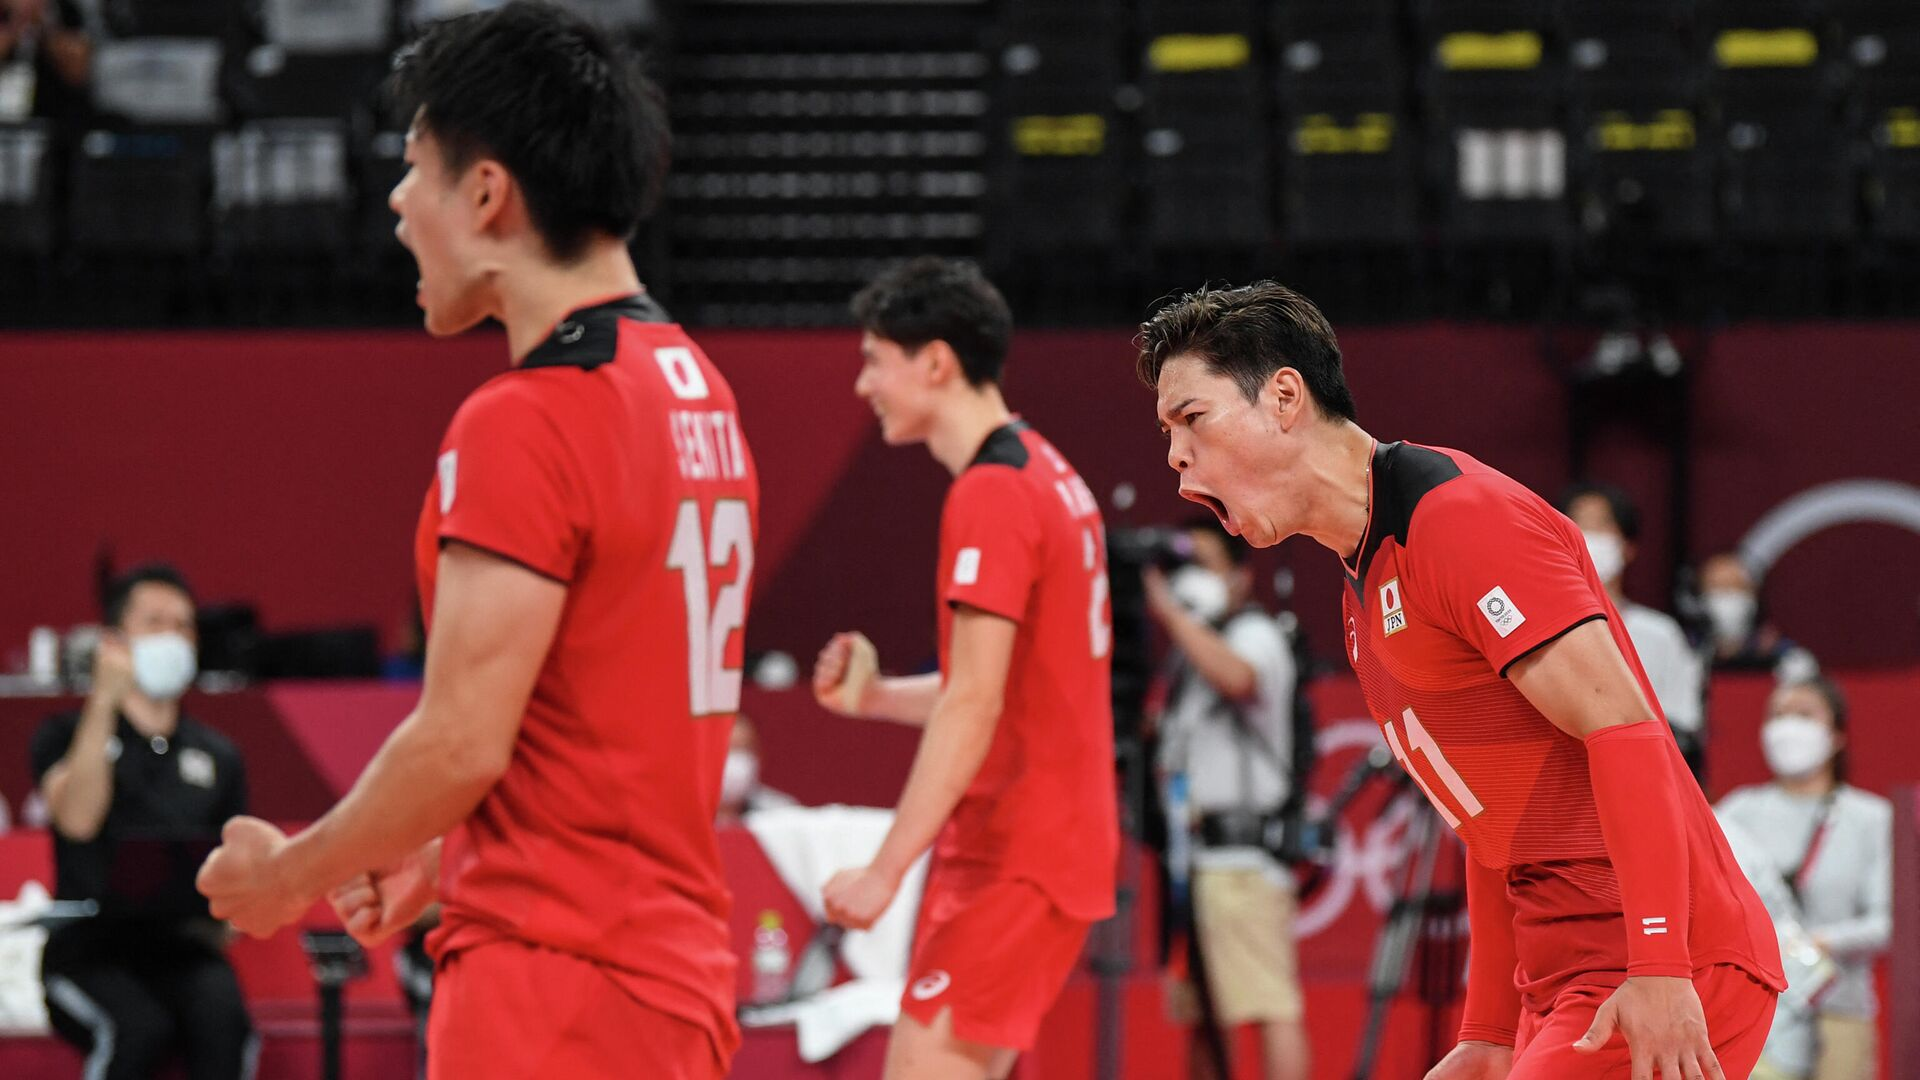 Japan's Yuji Nishida (R) celebrates their victory in the men's preliminary round pool A volleyball match between Japan and Iran during the Tokyo 2020 Olympic Games at Ariake Arena in Tokyo on August 1, 2021. (Photo by Yuri Cortez / AFP) - РИА Новости, 1920, 01.08.2021